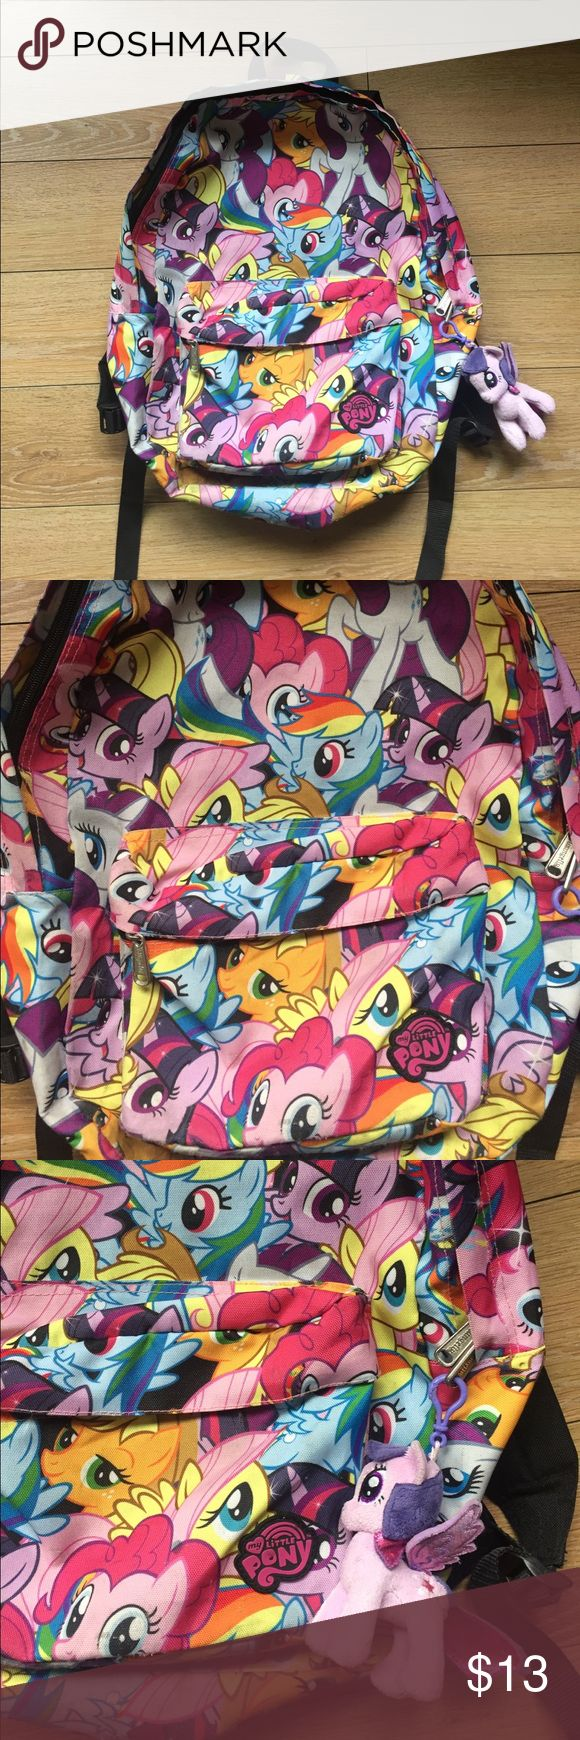 My Little Pony Backpack My little pony lounge fly Backpack well taken care of. There is a small my little pony key chain is attached can be taken off if you don't want it on. Lounge Fly Bags Backpacks